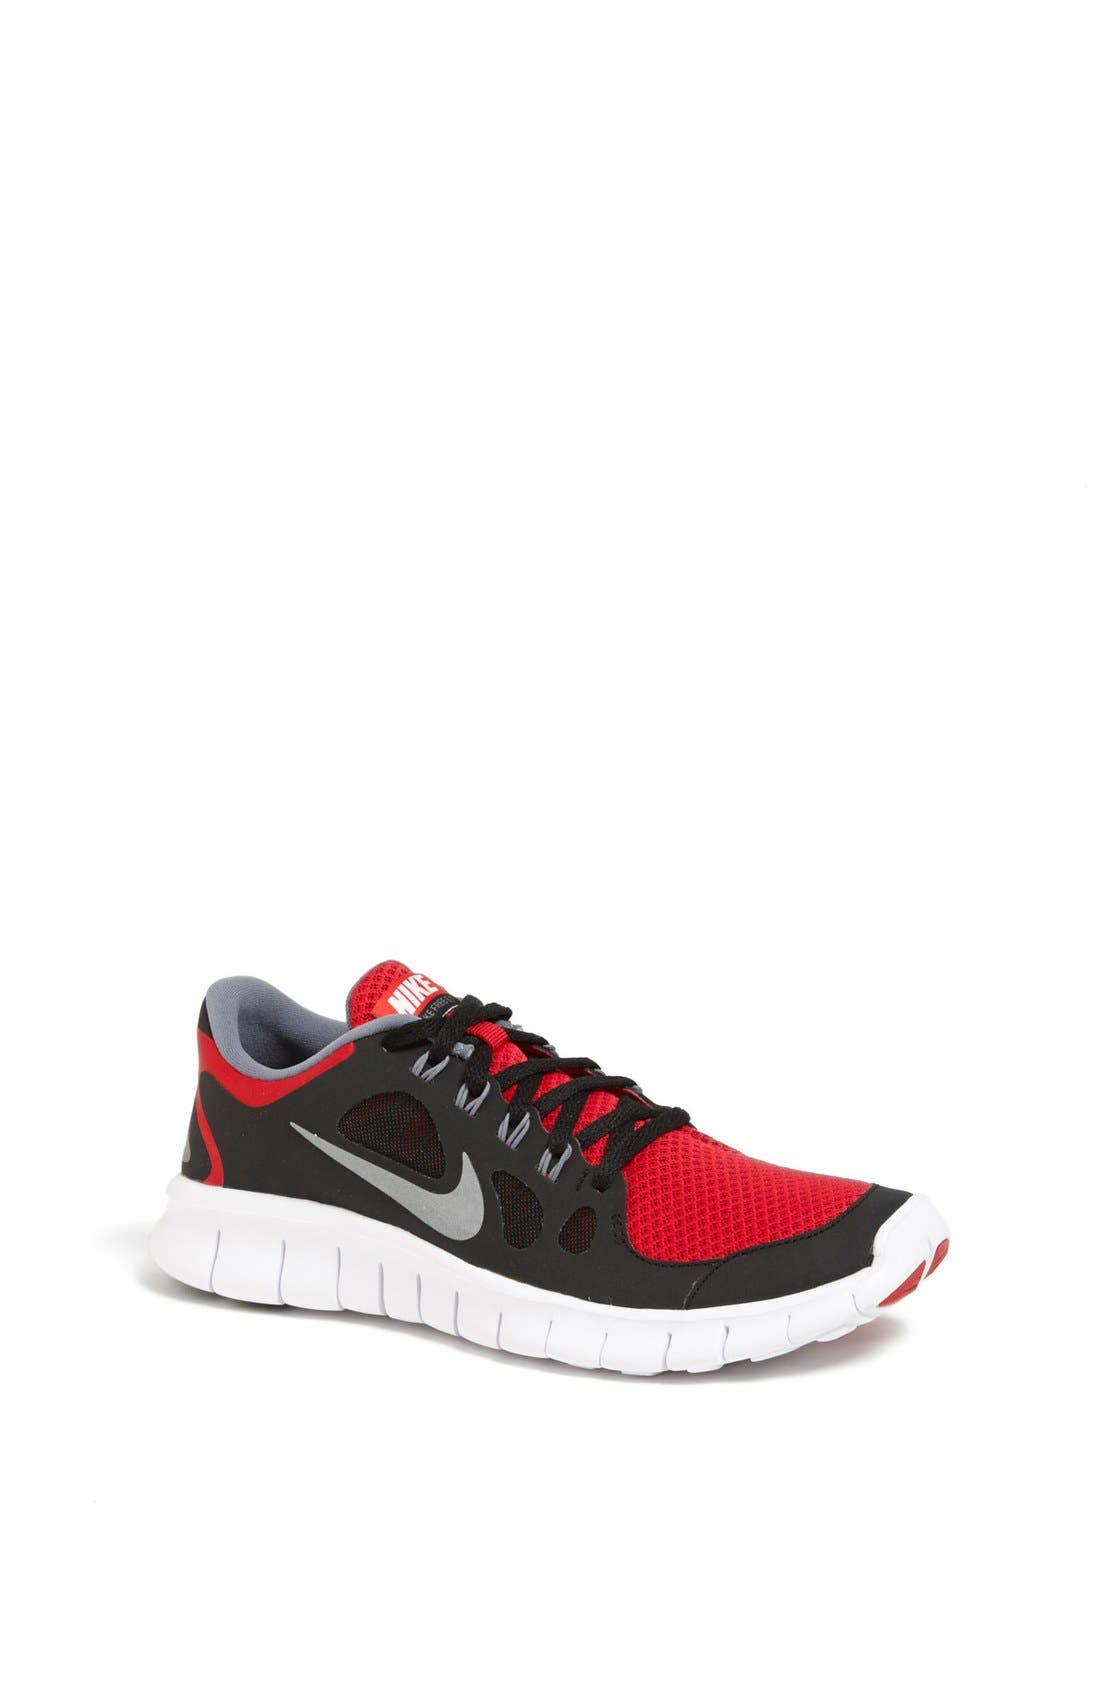 Alternate Image 1 Selected - Nike 'Free Run 5.0' Running Shoe (Big Kid)